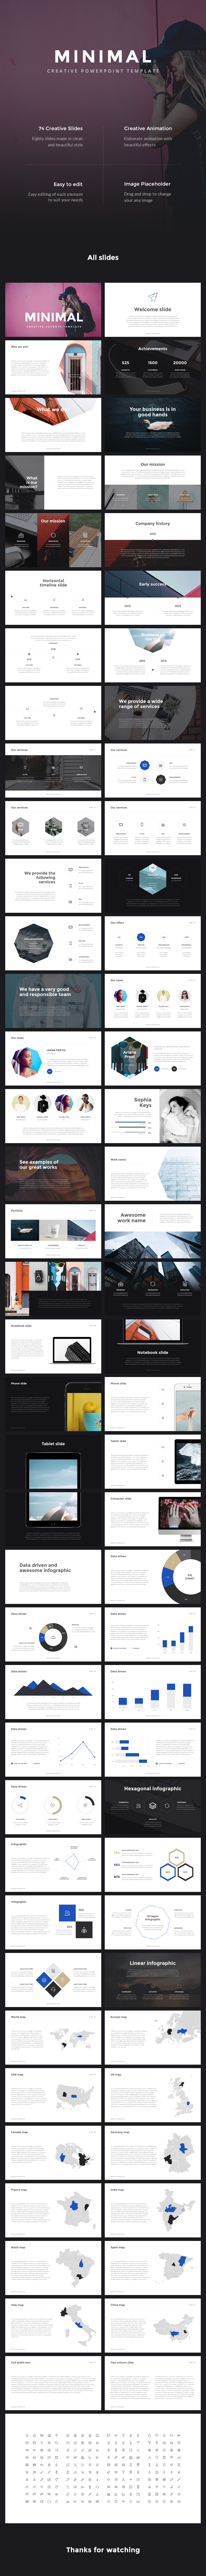 Minimal PowerPoint Template - Business PowerPoint Templates